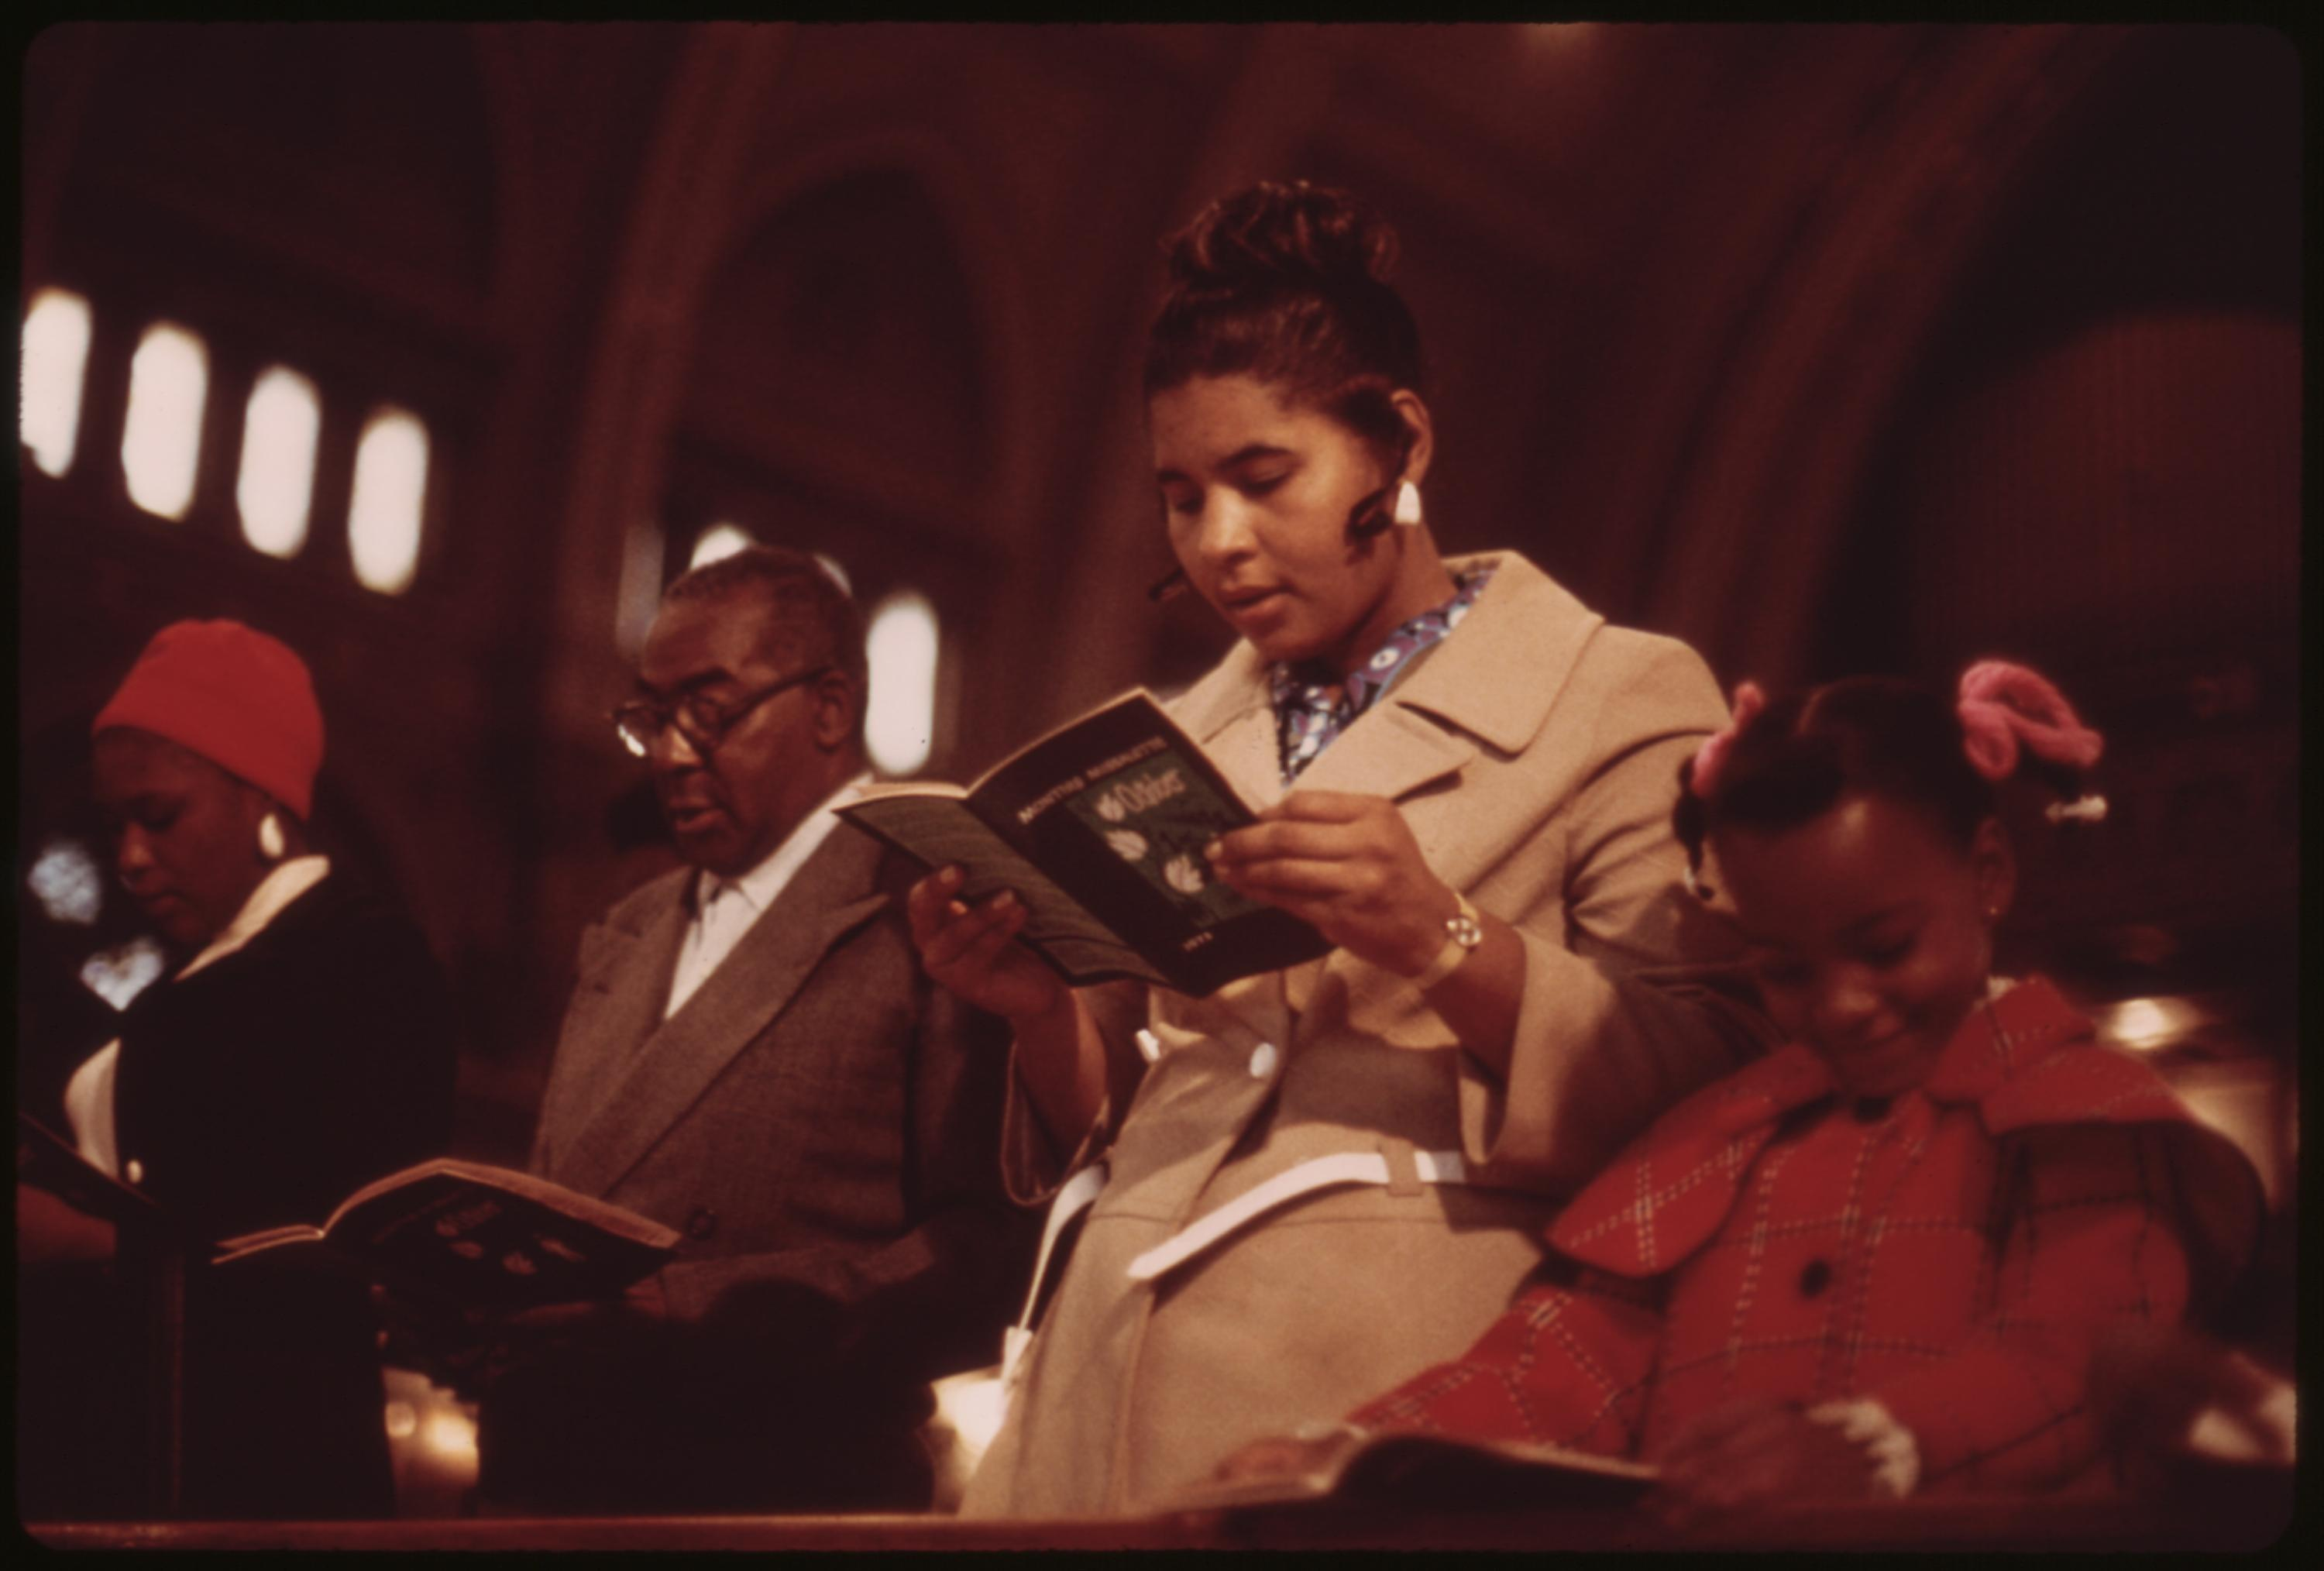 Worshippers At Holy Angel Catholic Church On Chicago's South Side. It Is The City's Largest Black Catholic Church. The Pastor Is Father George H. Clements, A Leader In The Black Community, 10:1973 John H. White